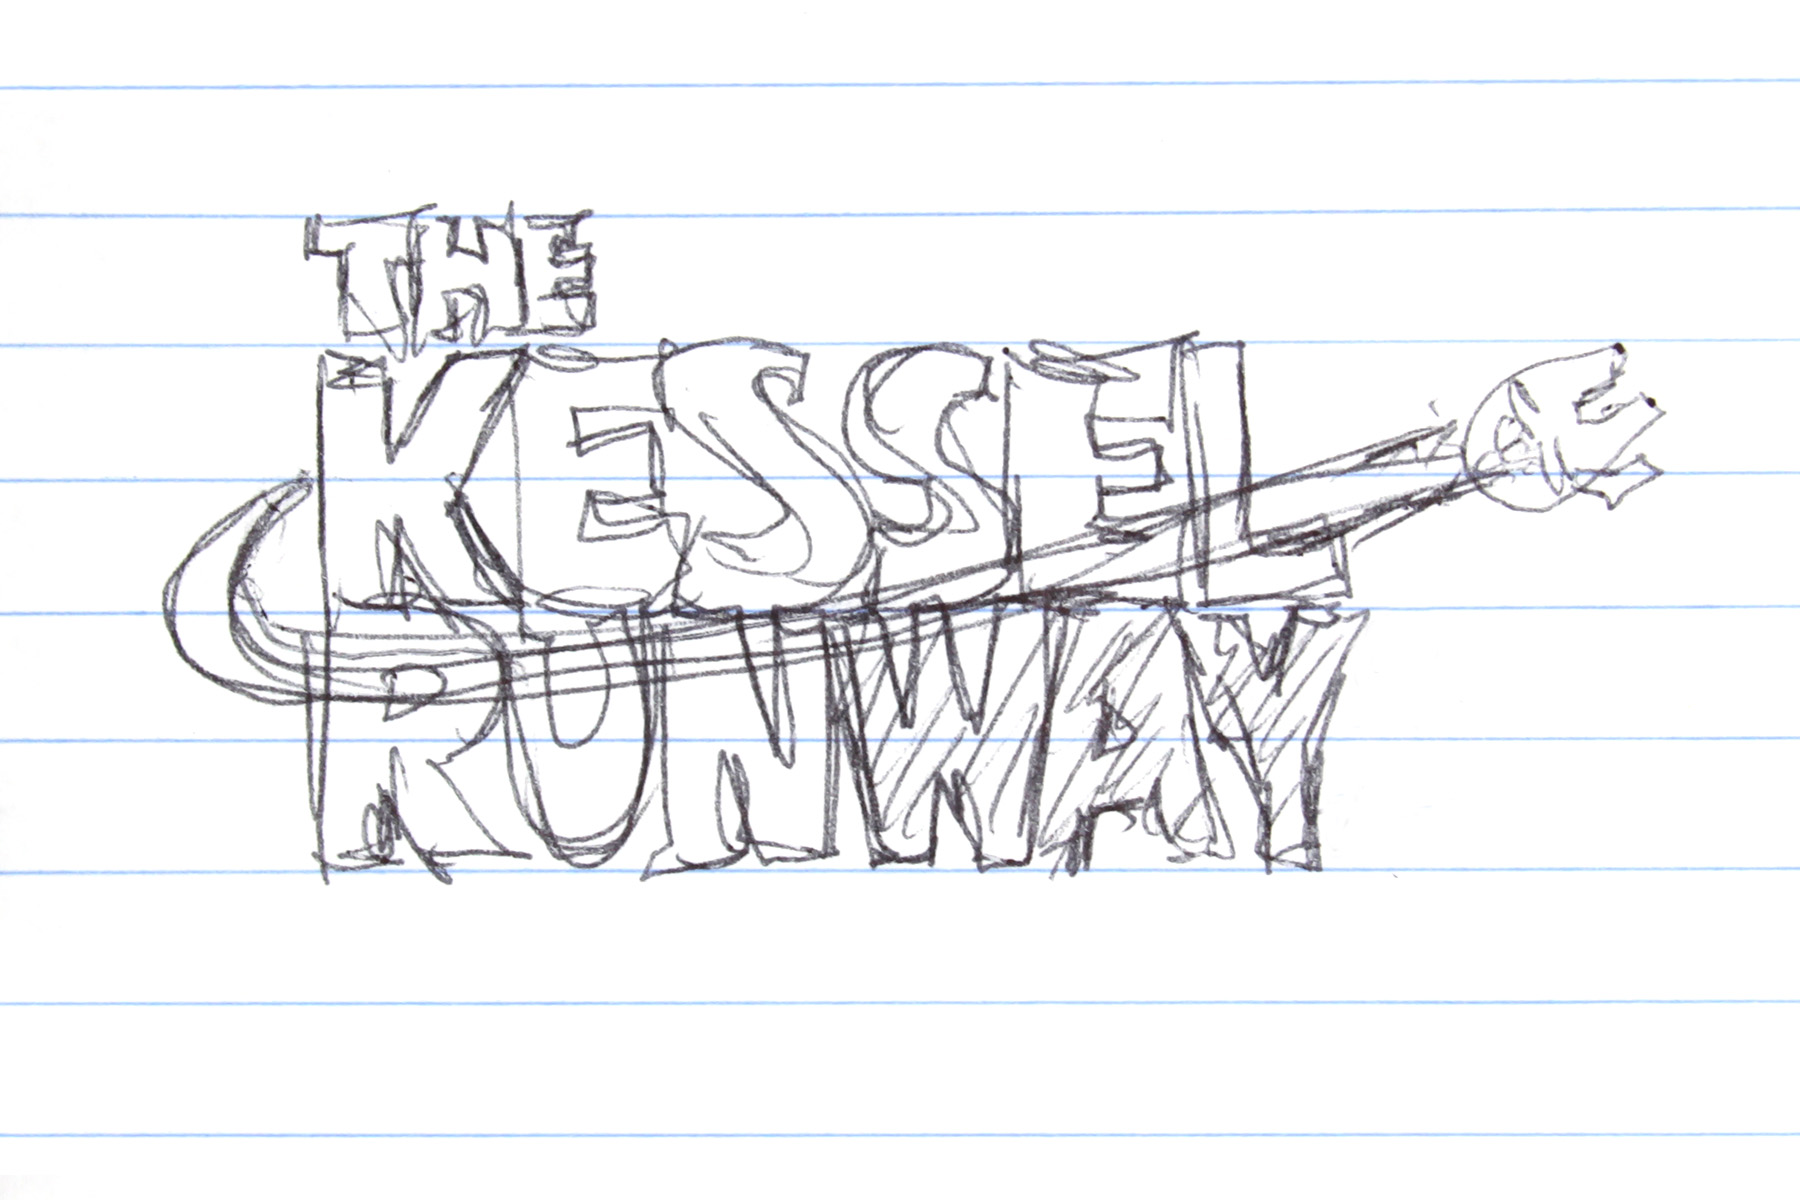 The Kessel Runway - Four Years Ago Today